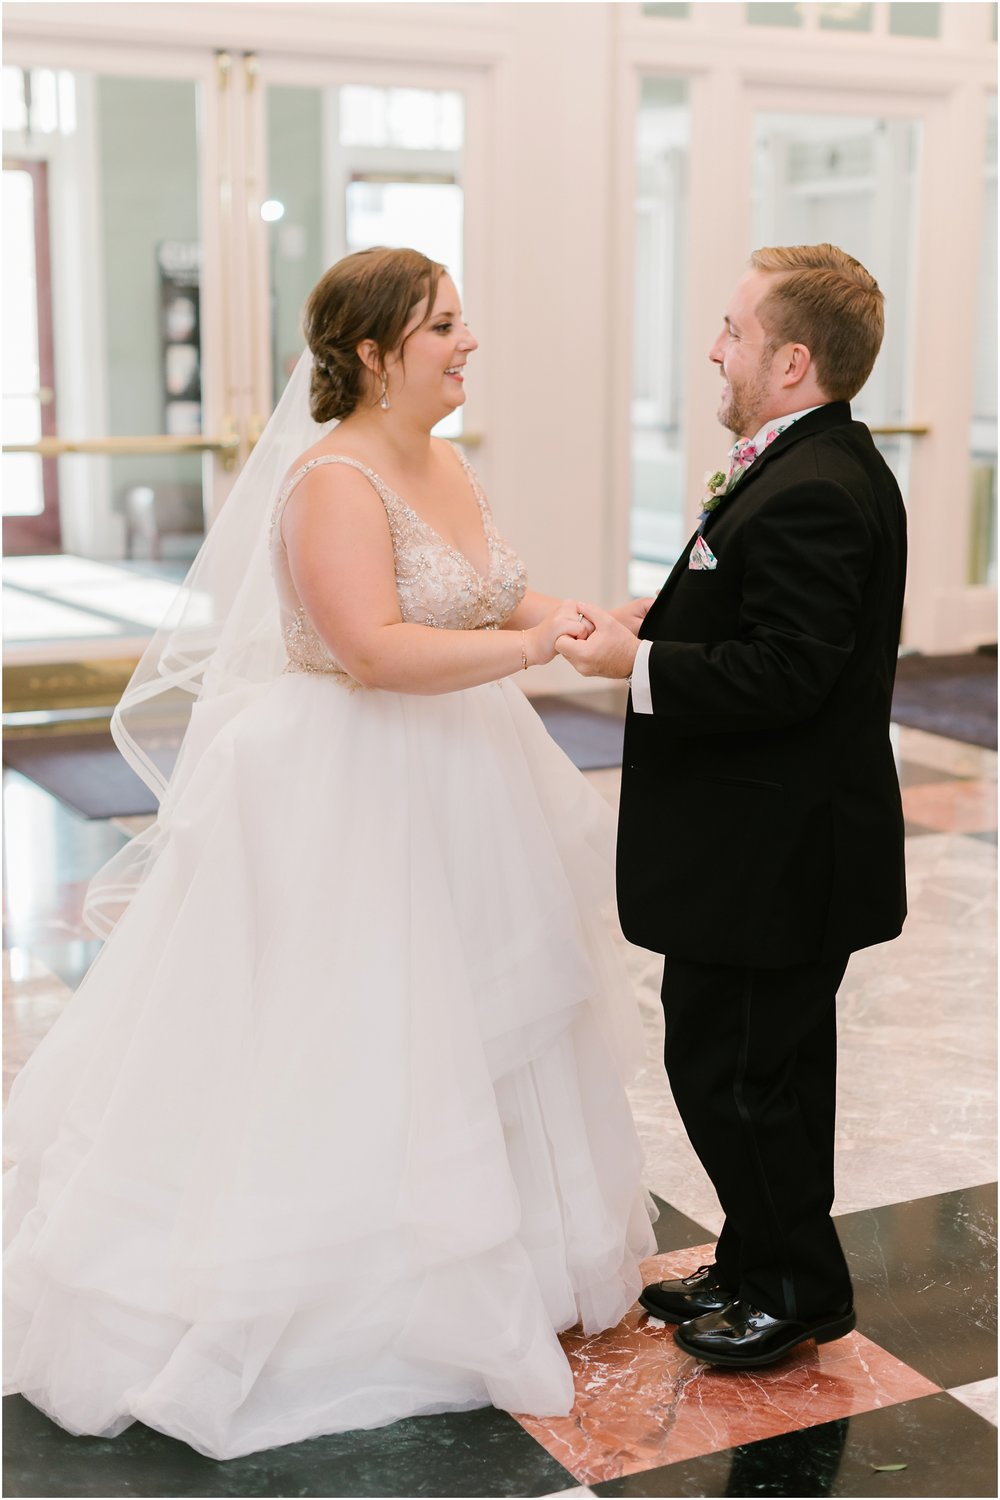 Rebecca_Shehorn_Photography_Indianapolis_Wedding_Photographer_8848.jpg